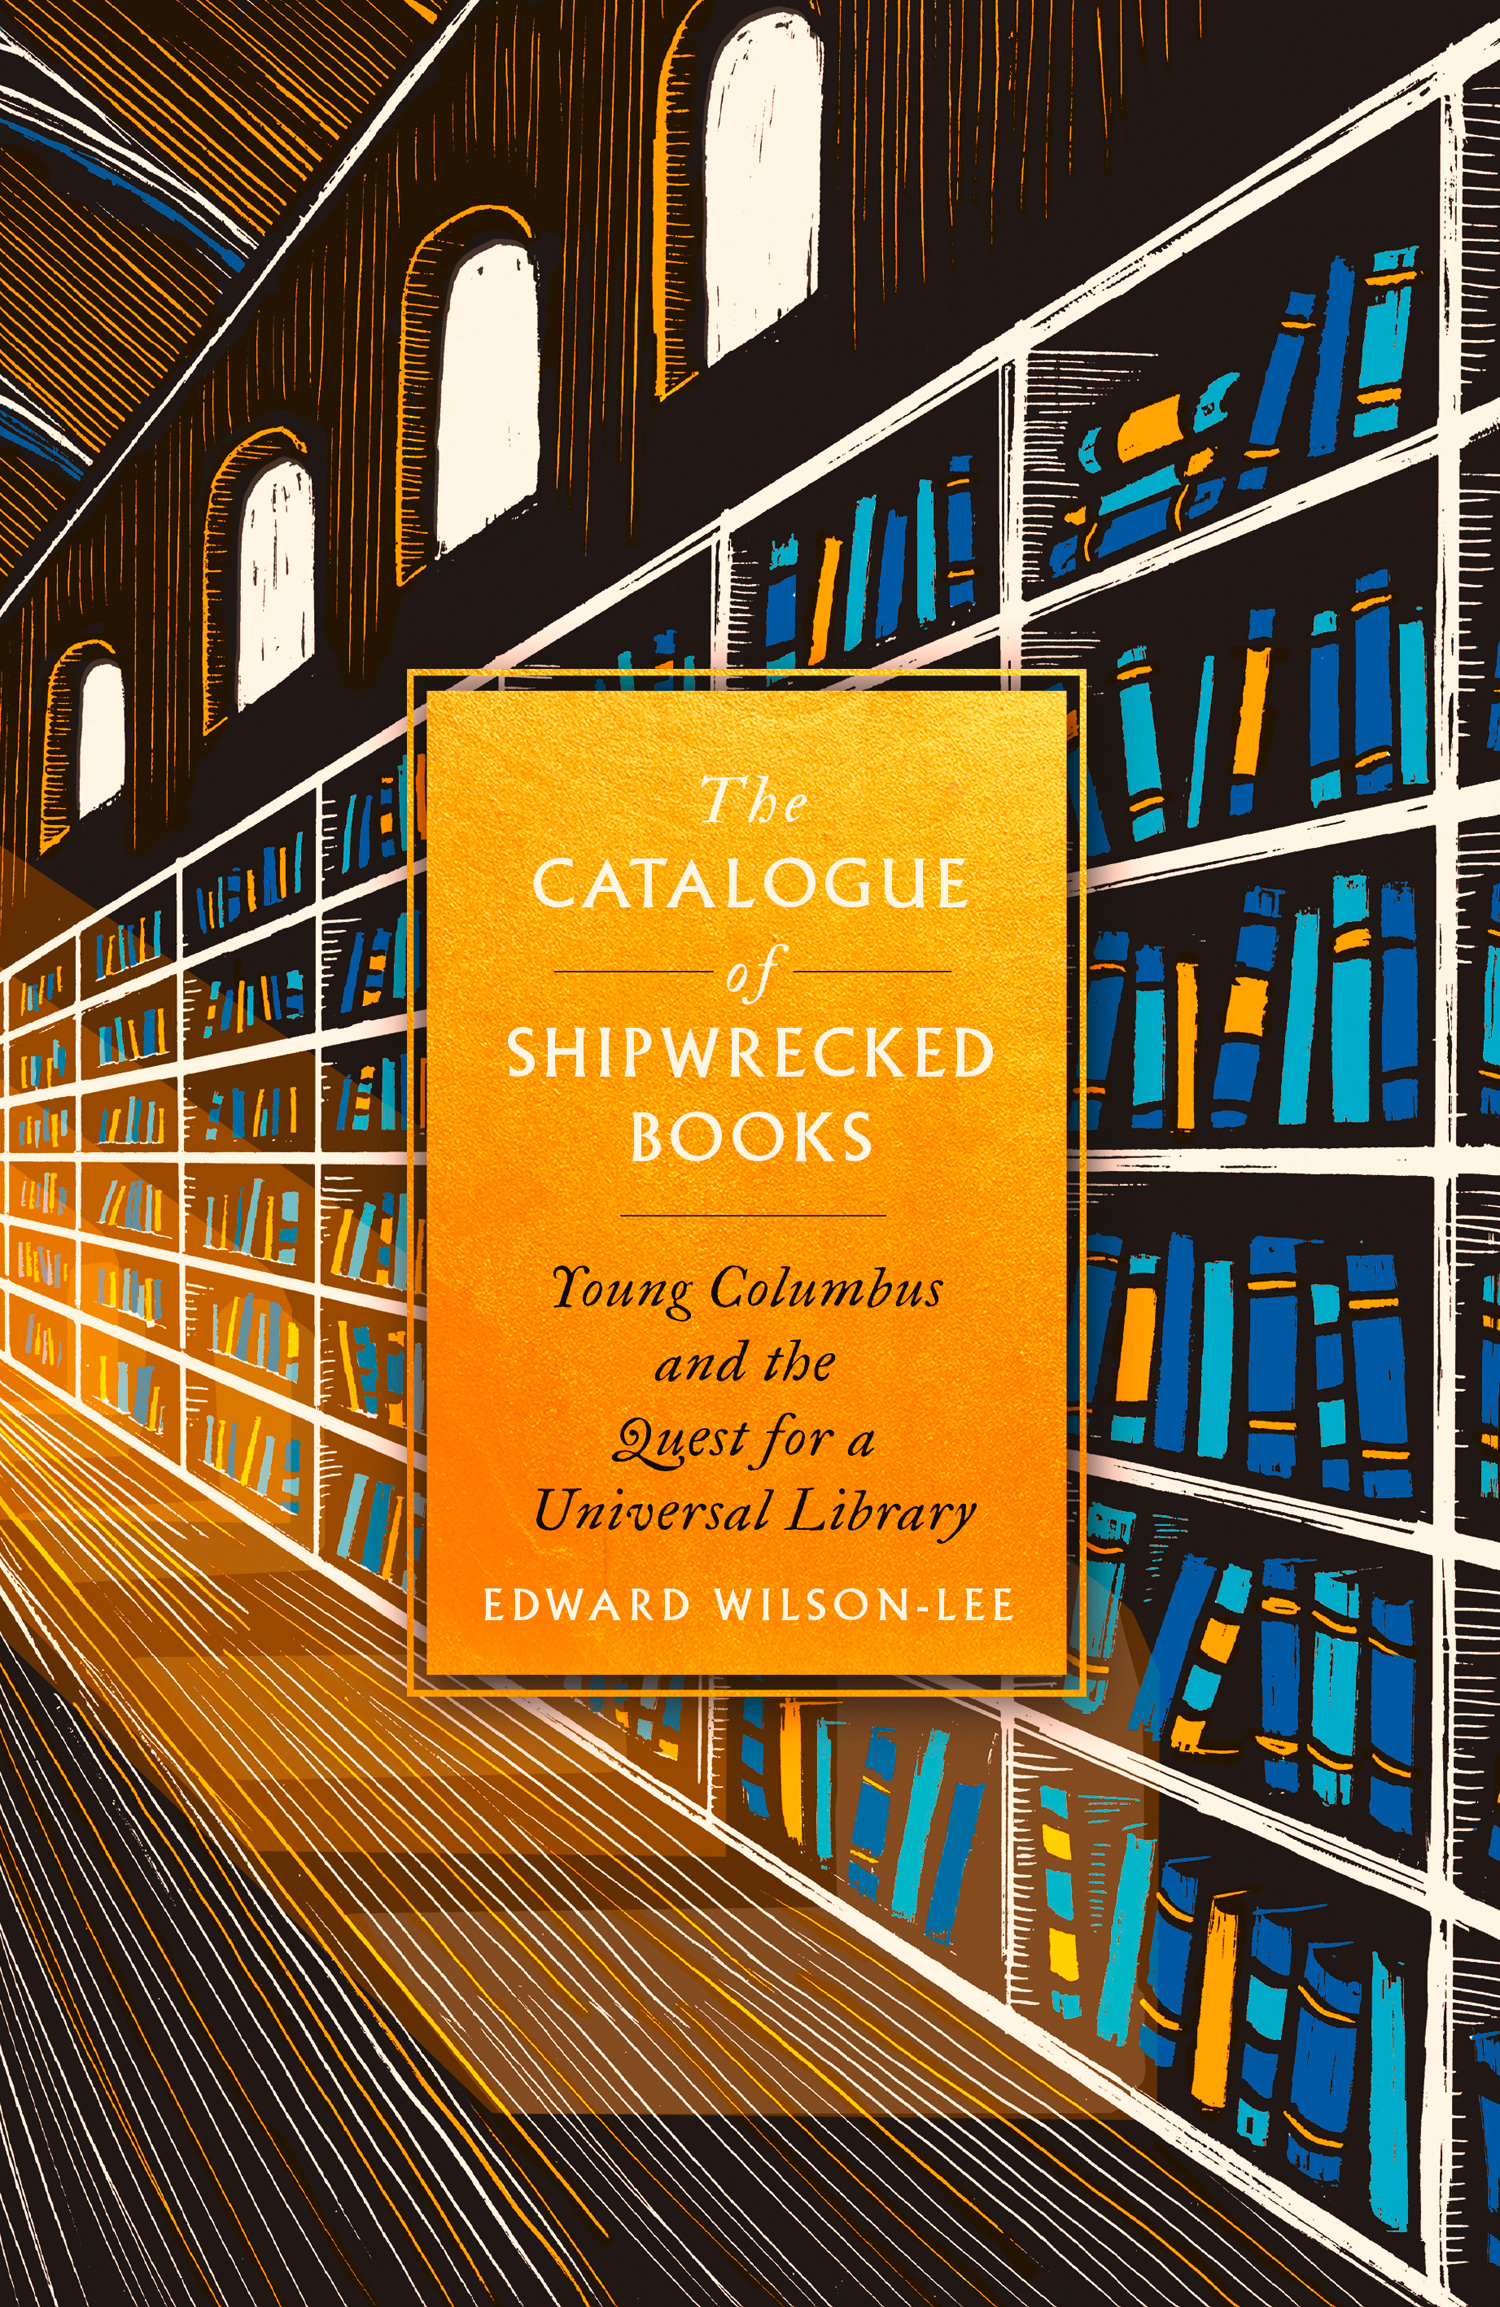 CATALOGUE OF SHIPWRECKED BOOKS - front.JPG